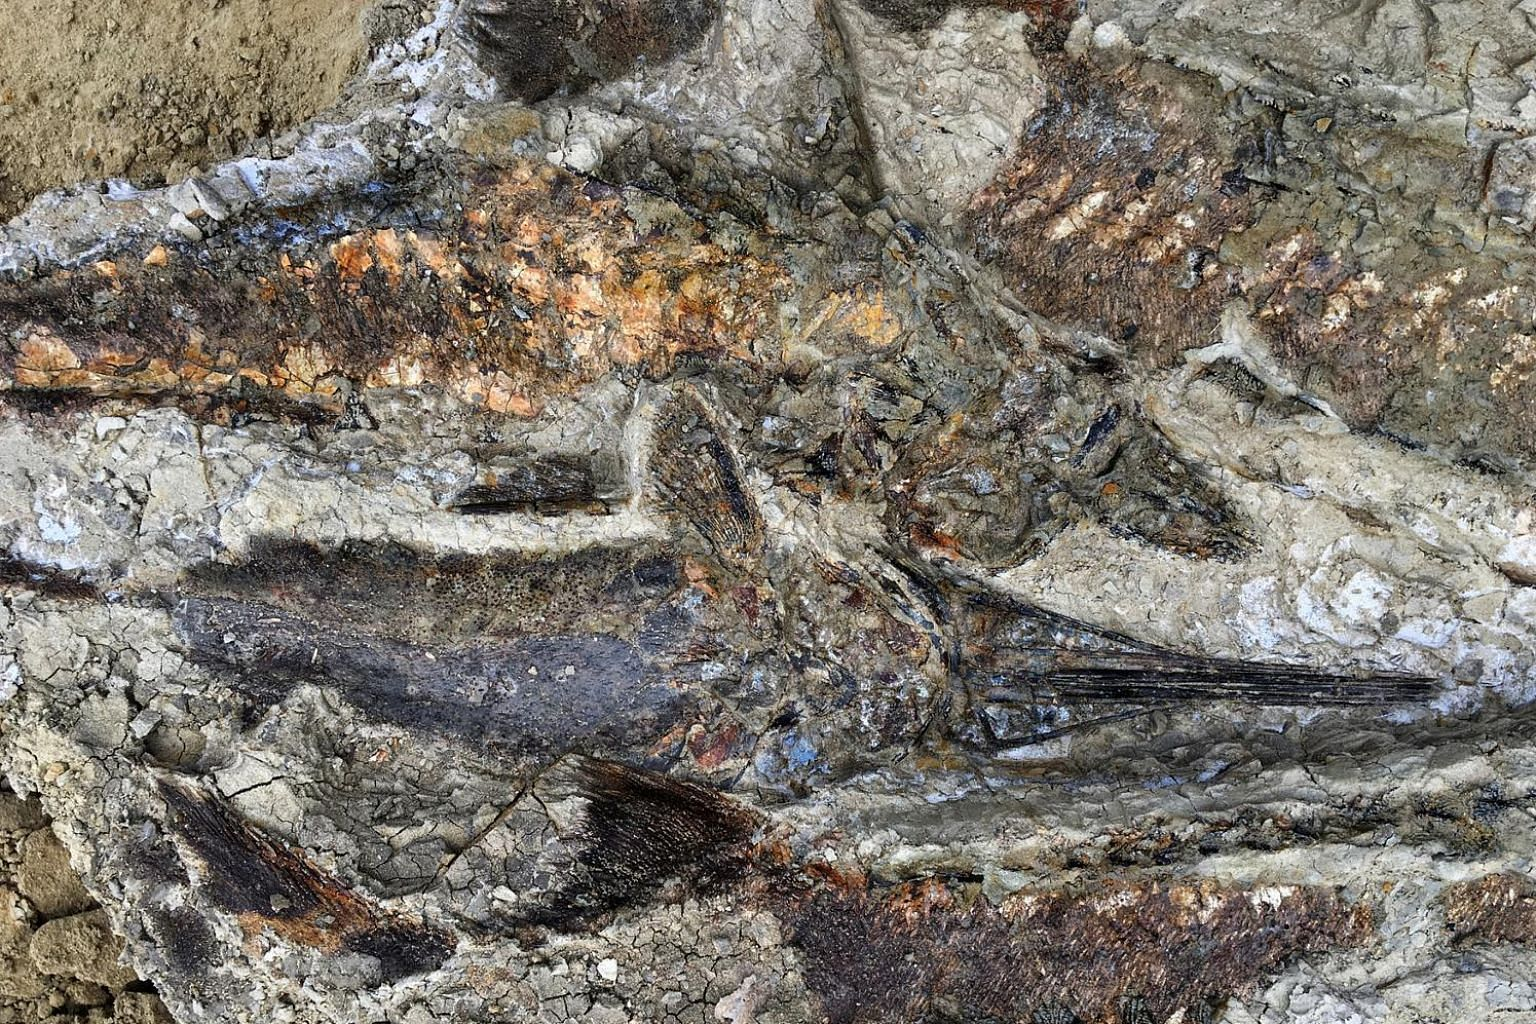 A tangled mass of fish from the recently dug-up deposit in North Dakota's Hell Creek formation.